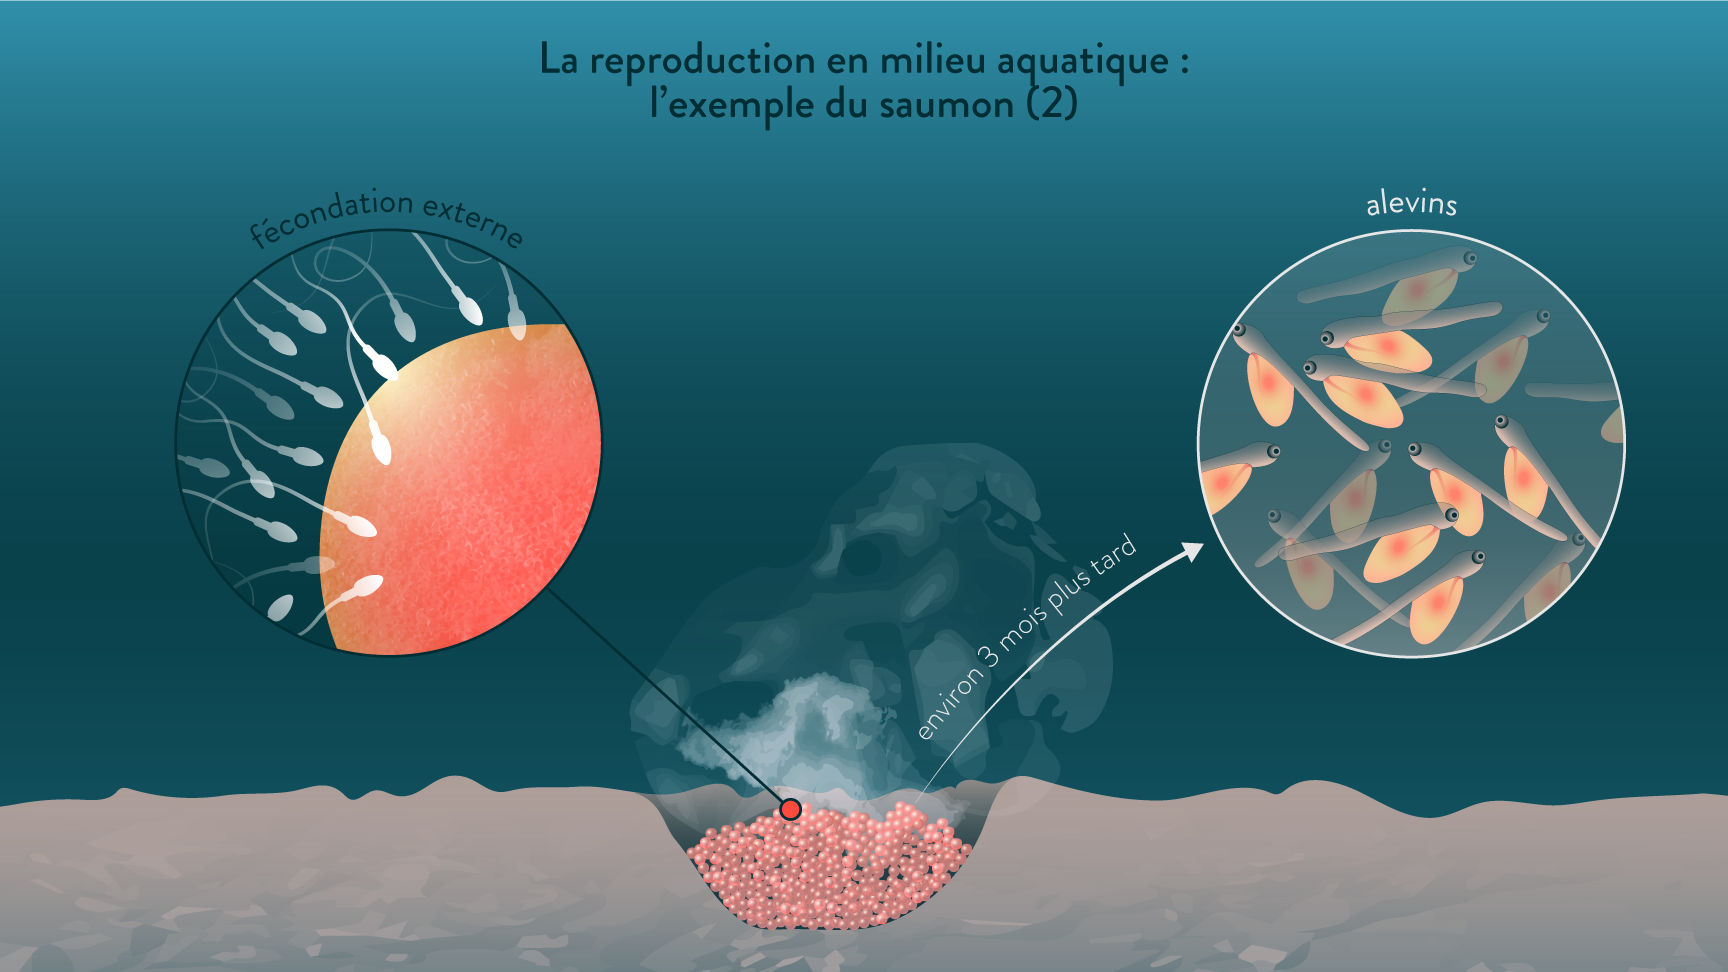 La reproduction en milieu aquatique : exemple du saumon